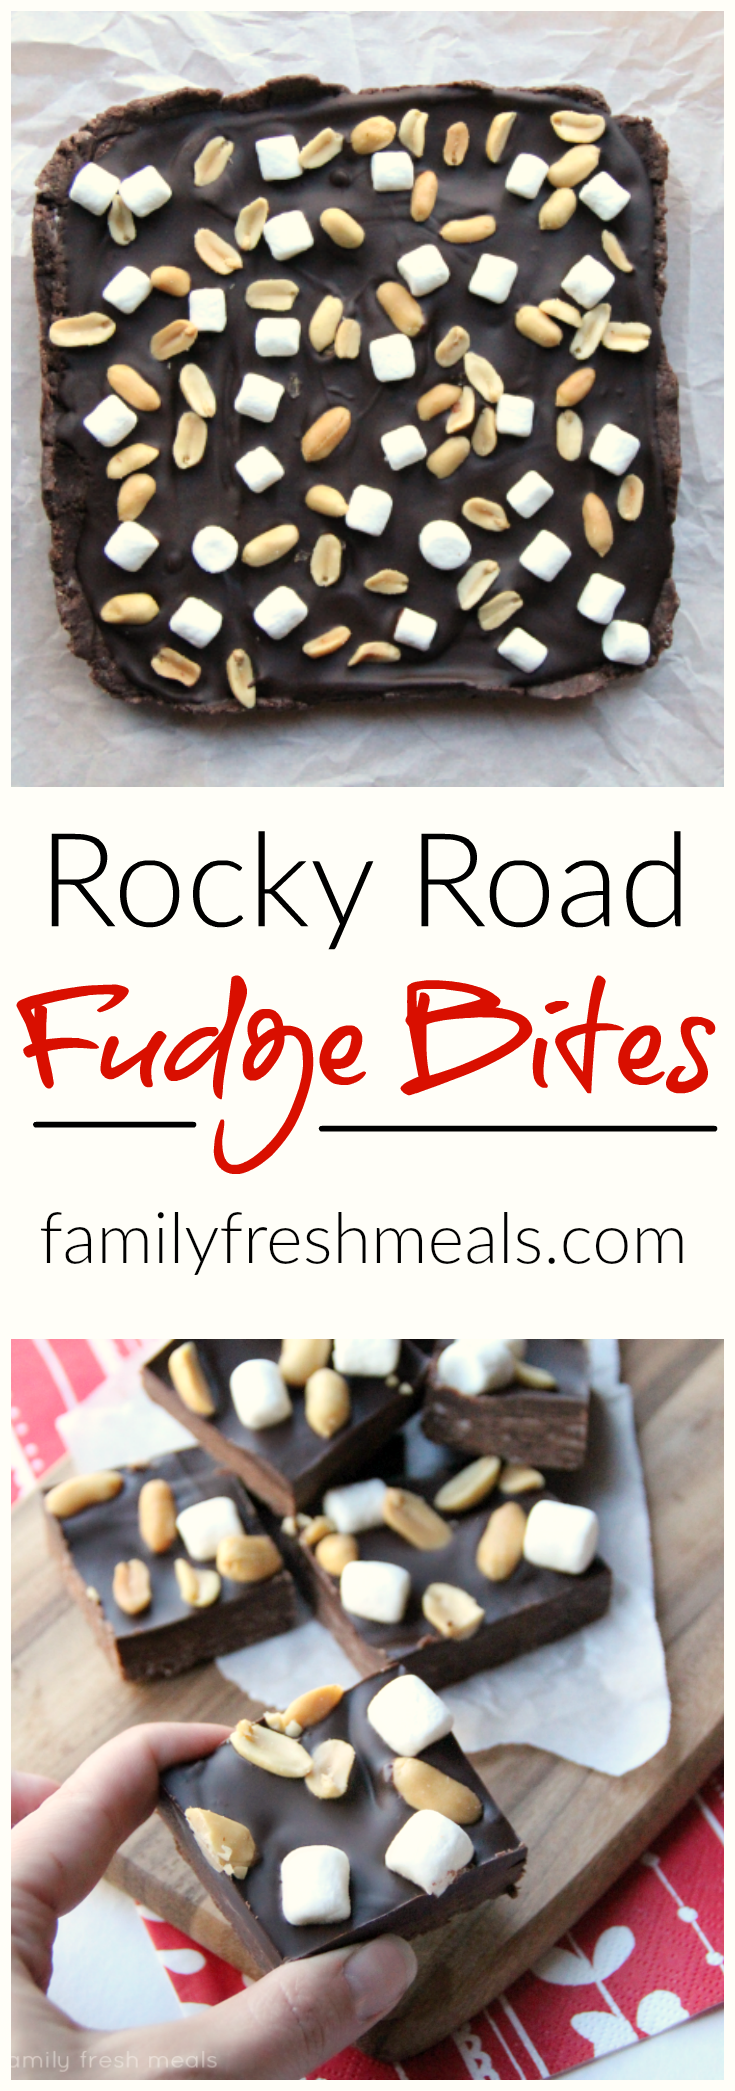 Rocky Road Fudge Bites - You won't believe how easy this is to make!